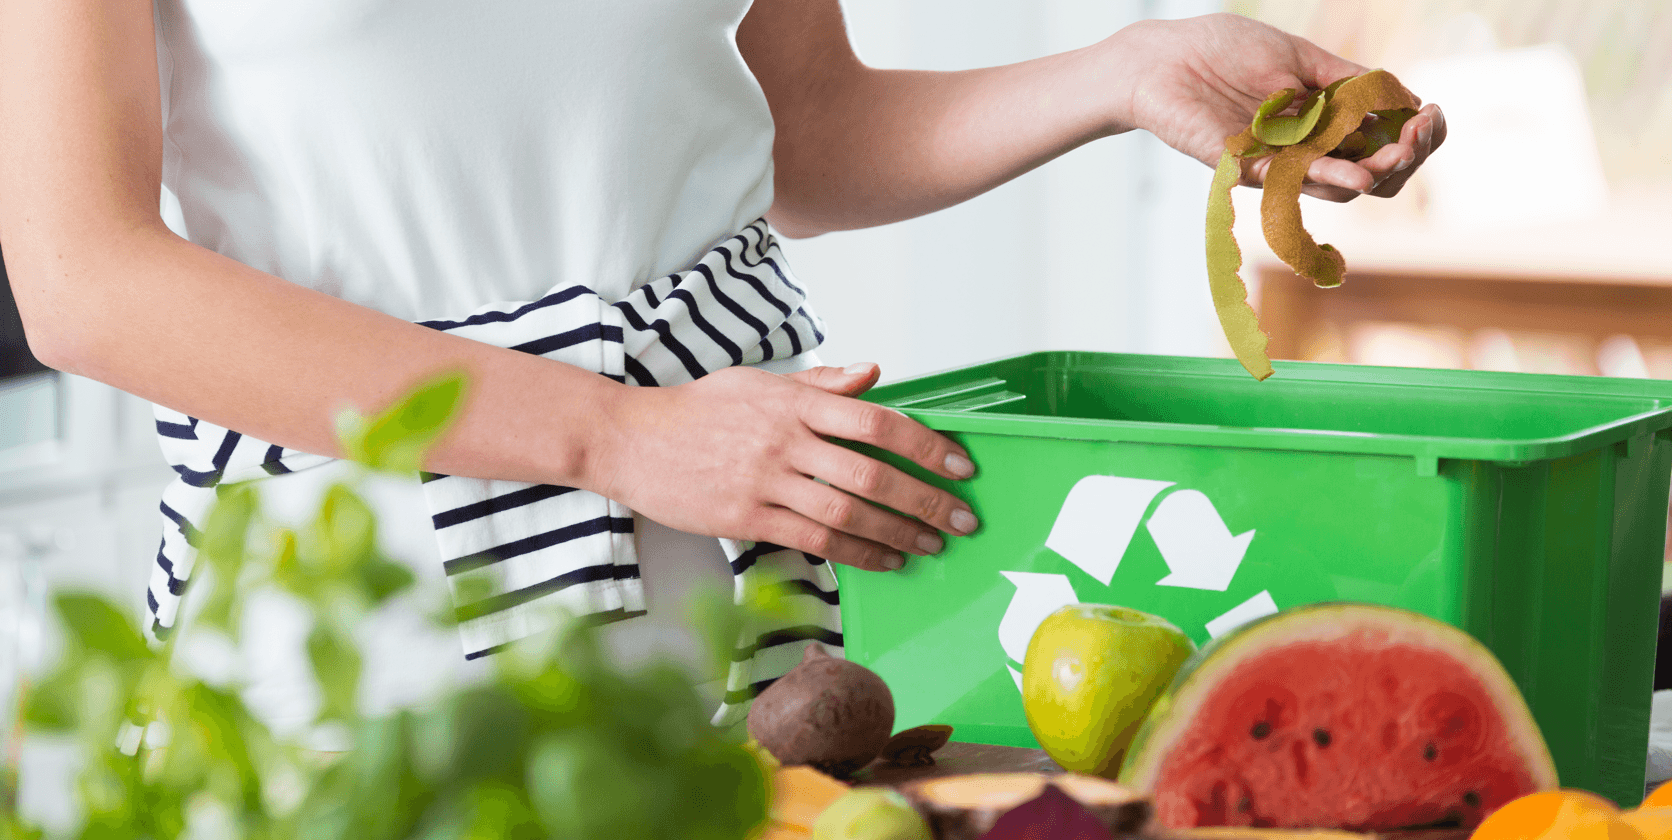 Calgary's Green Cart Food and Waste Program Compost Featured Image